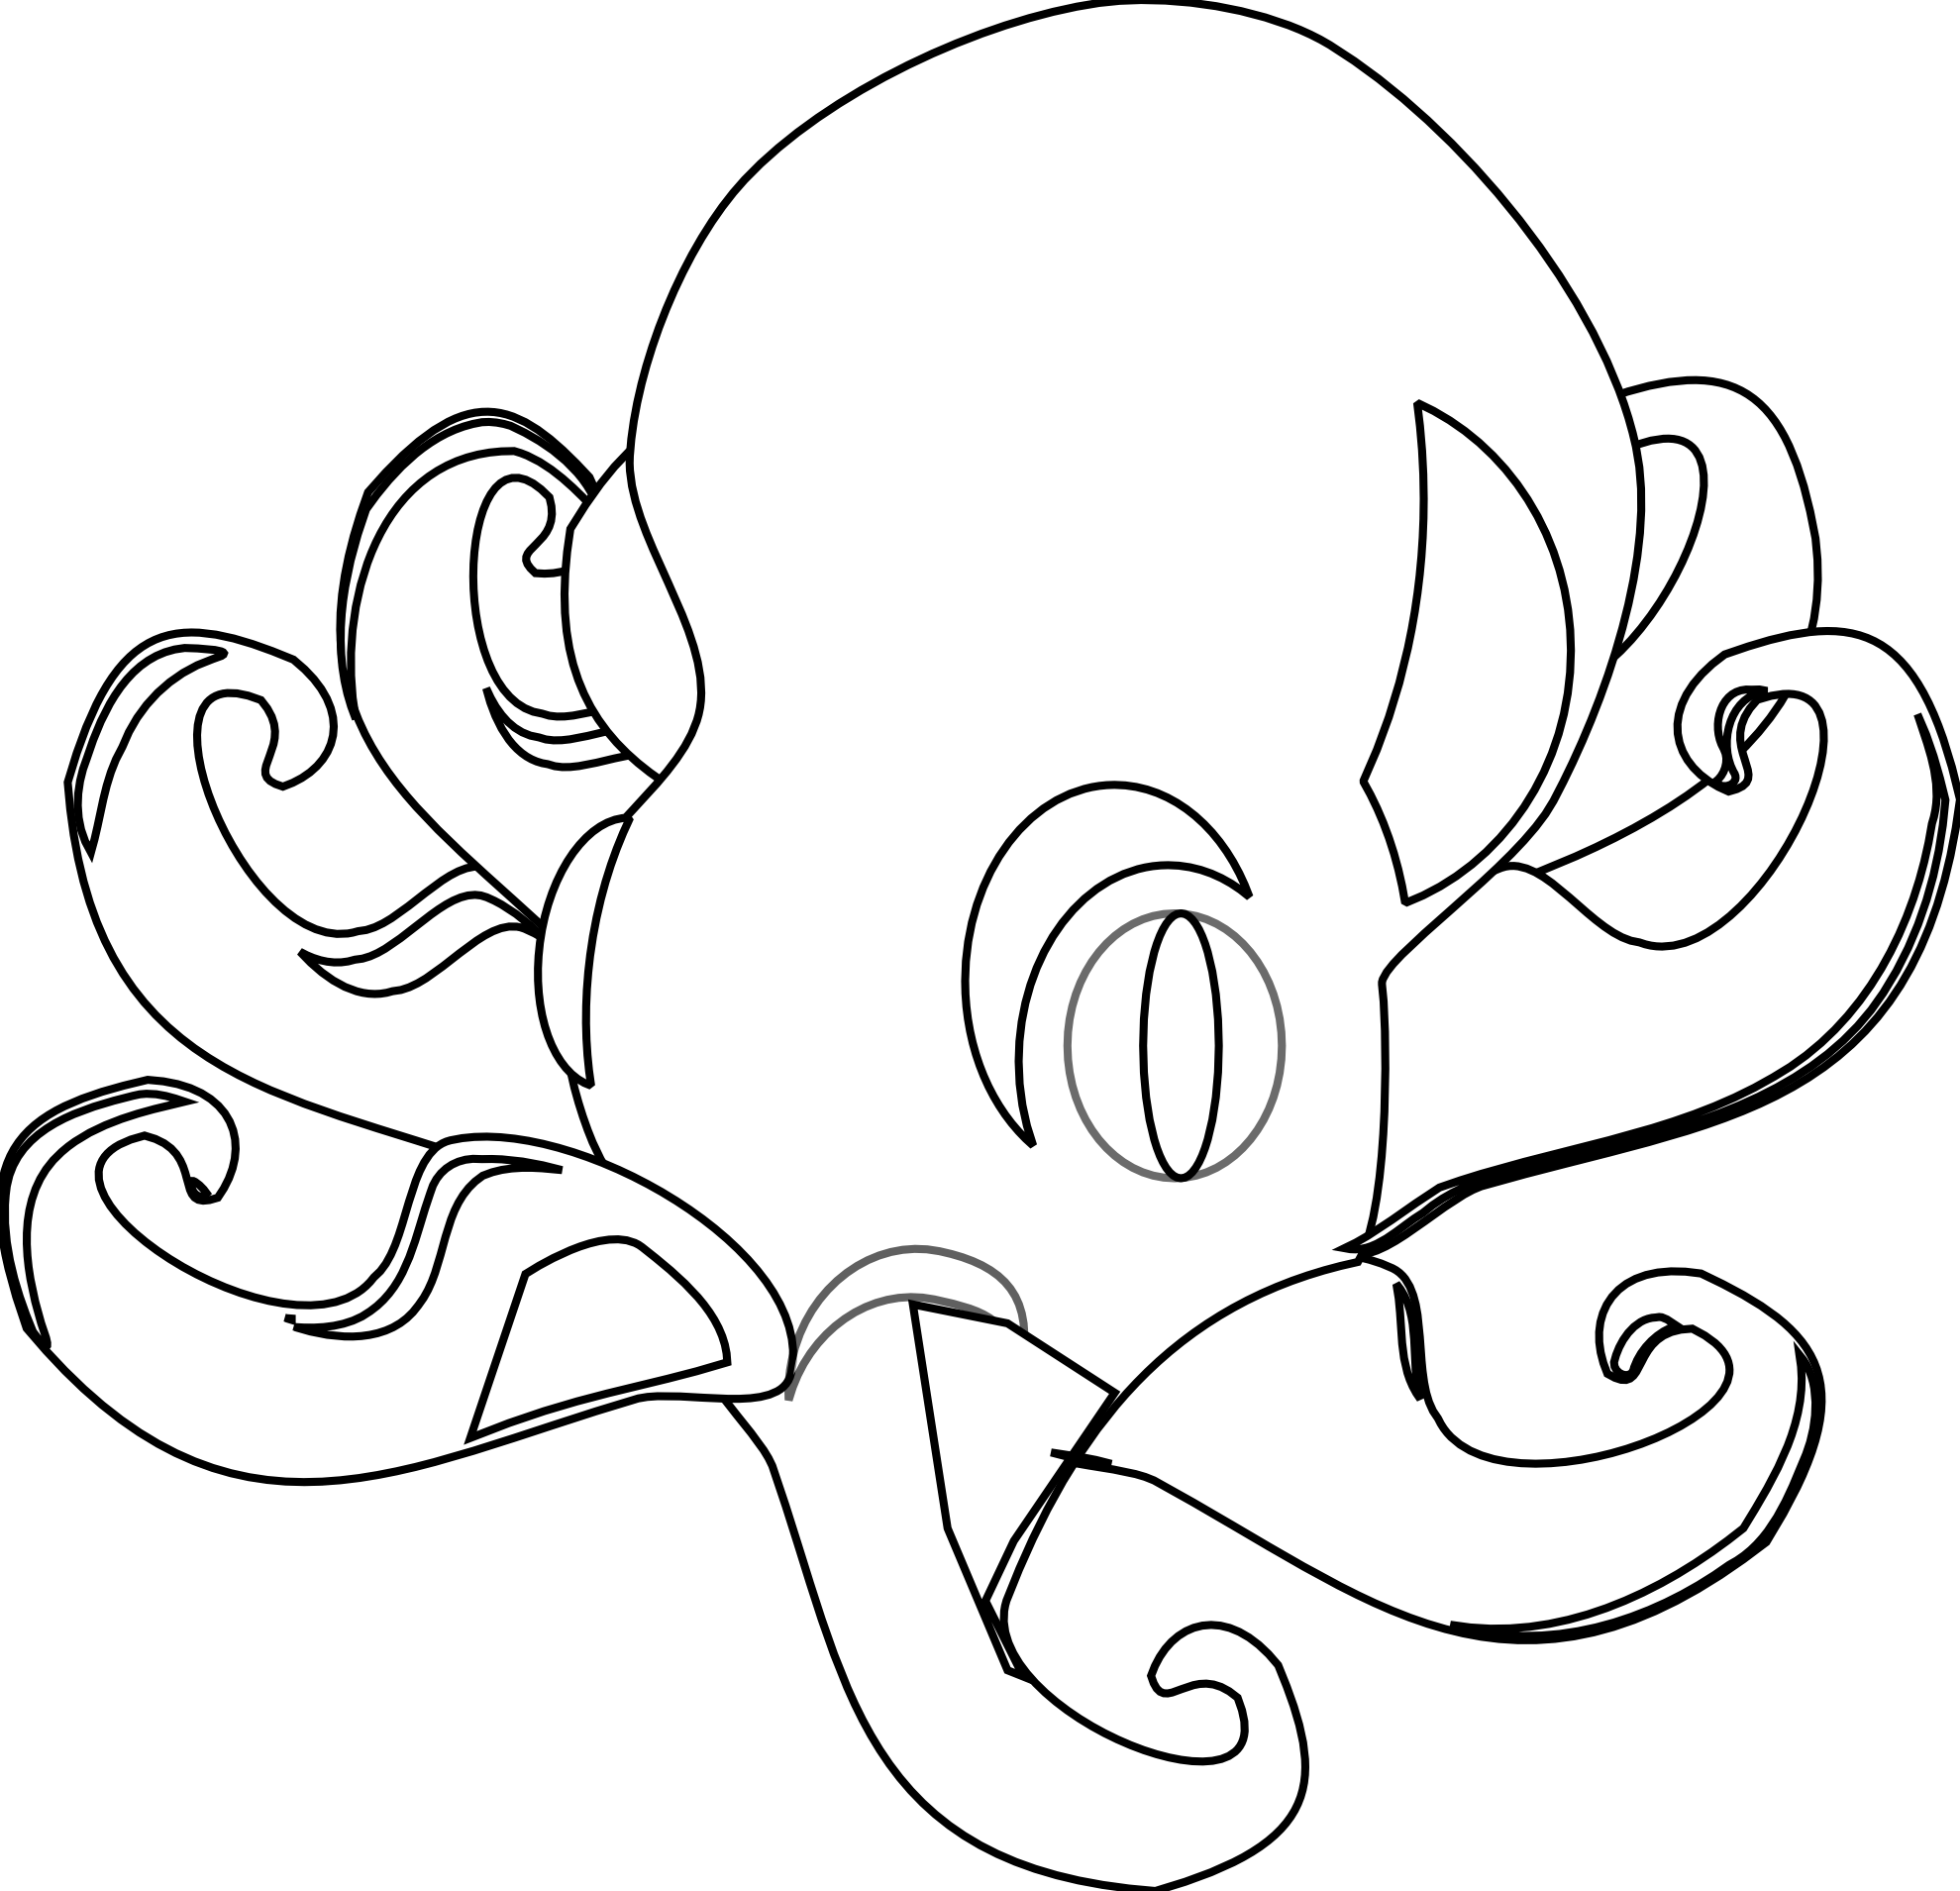 Octopus Clipart Black And White Clipart Panda